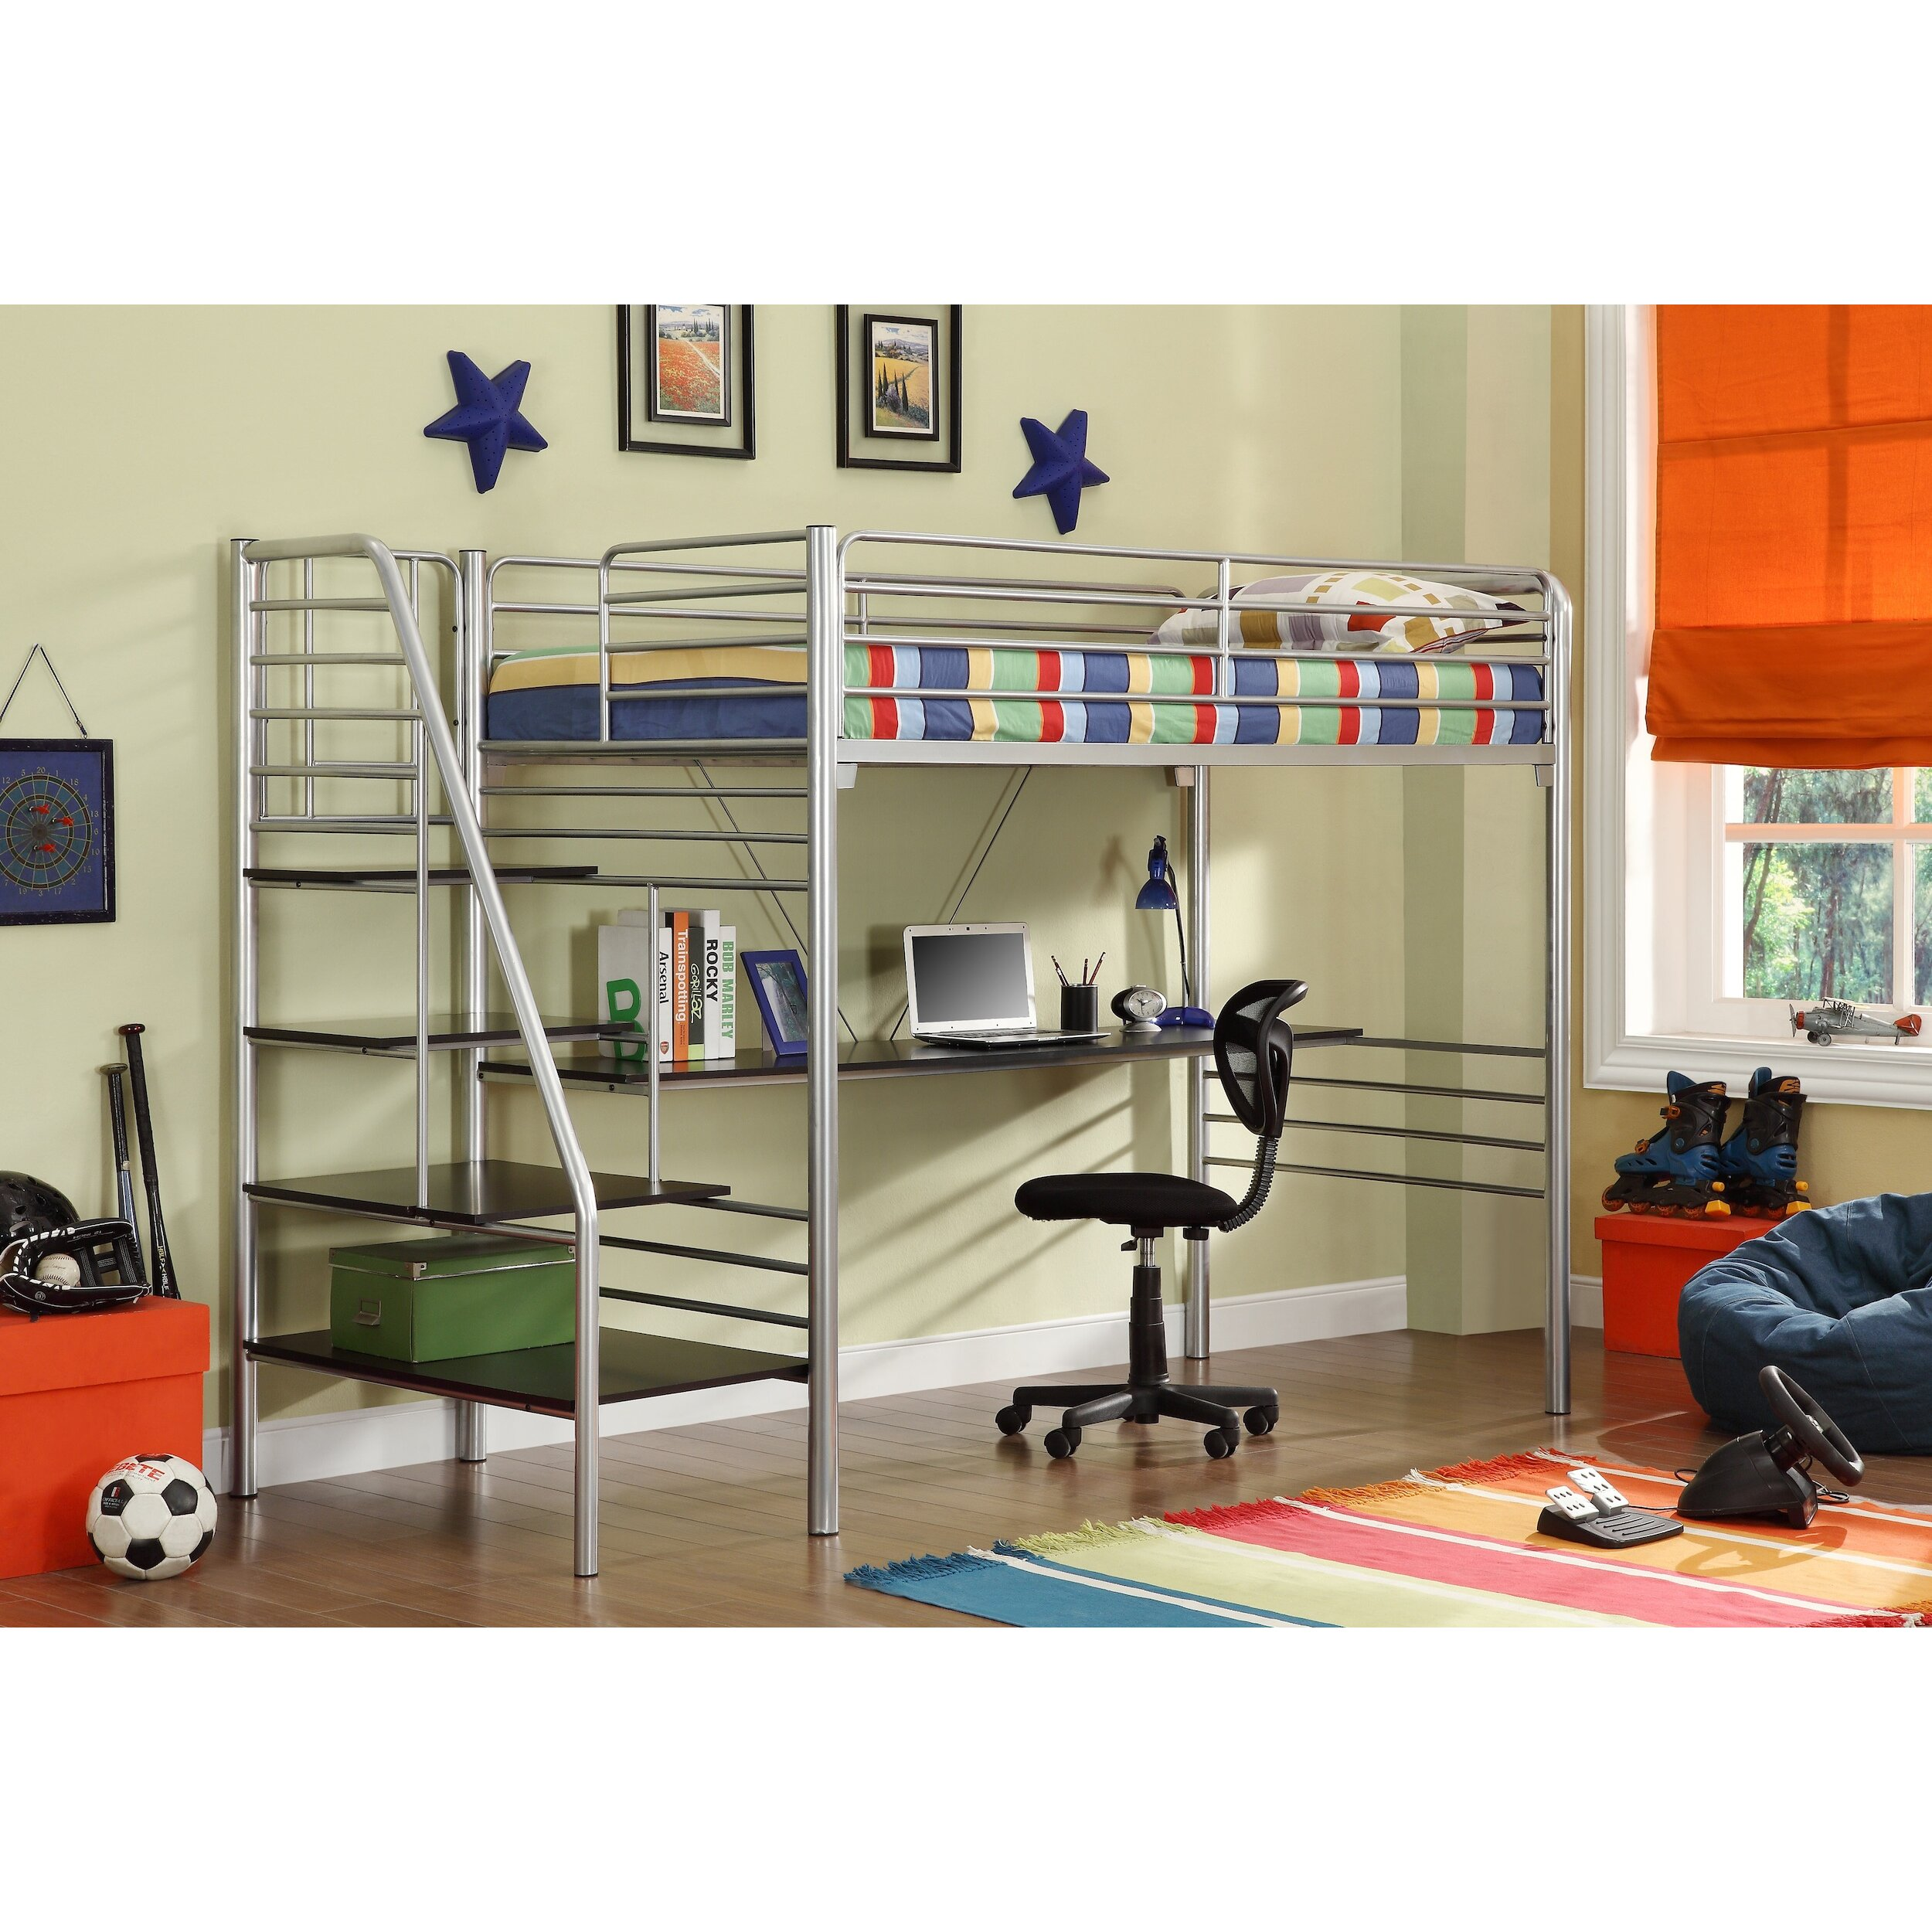 Metal bunk bed with slide - Donco Kids Twin Loft Bed